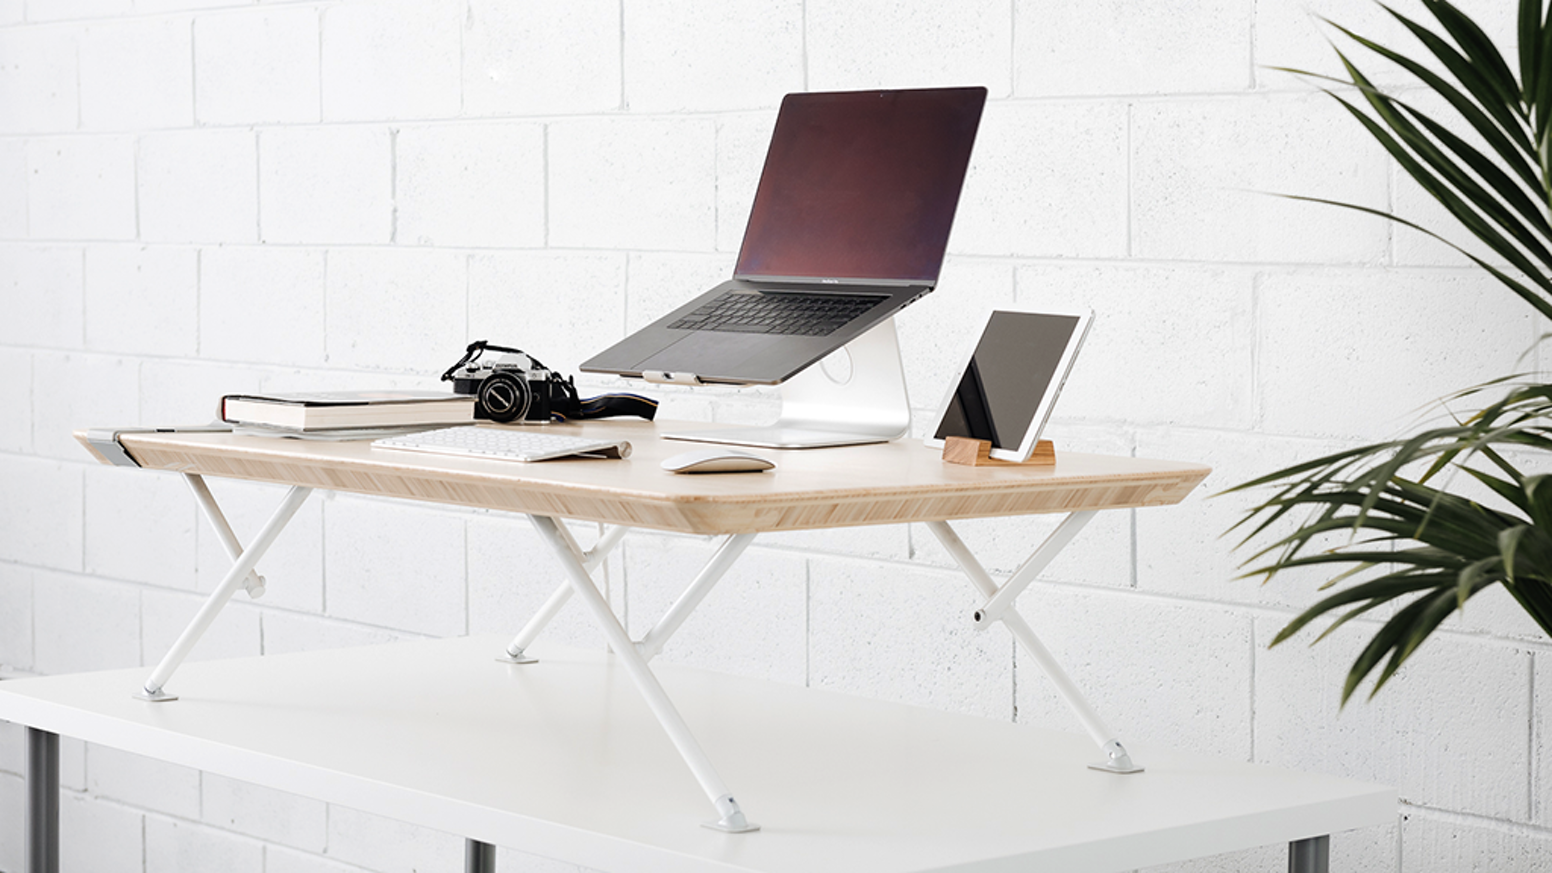 MOVI is the most innovative, ergonomic, spacious standing desk add-on. Sit